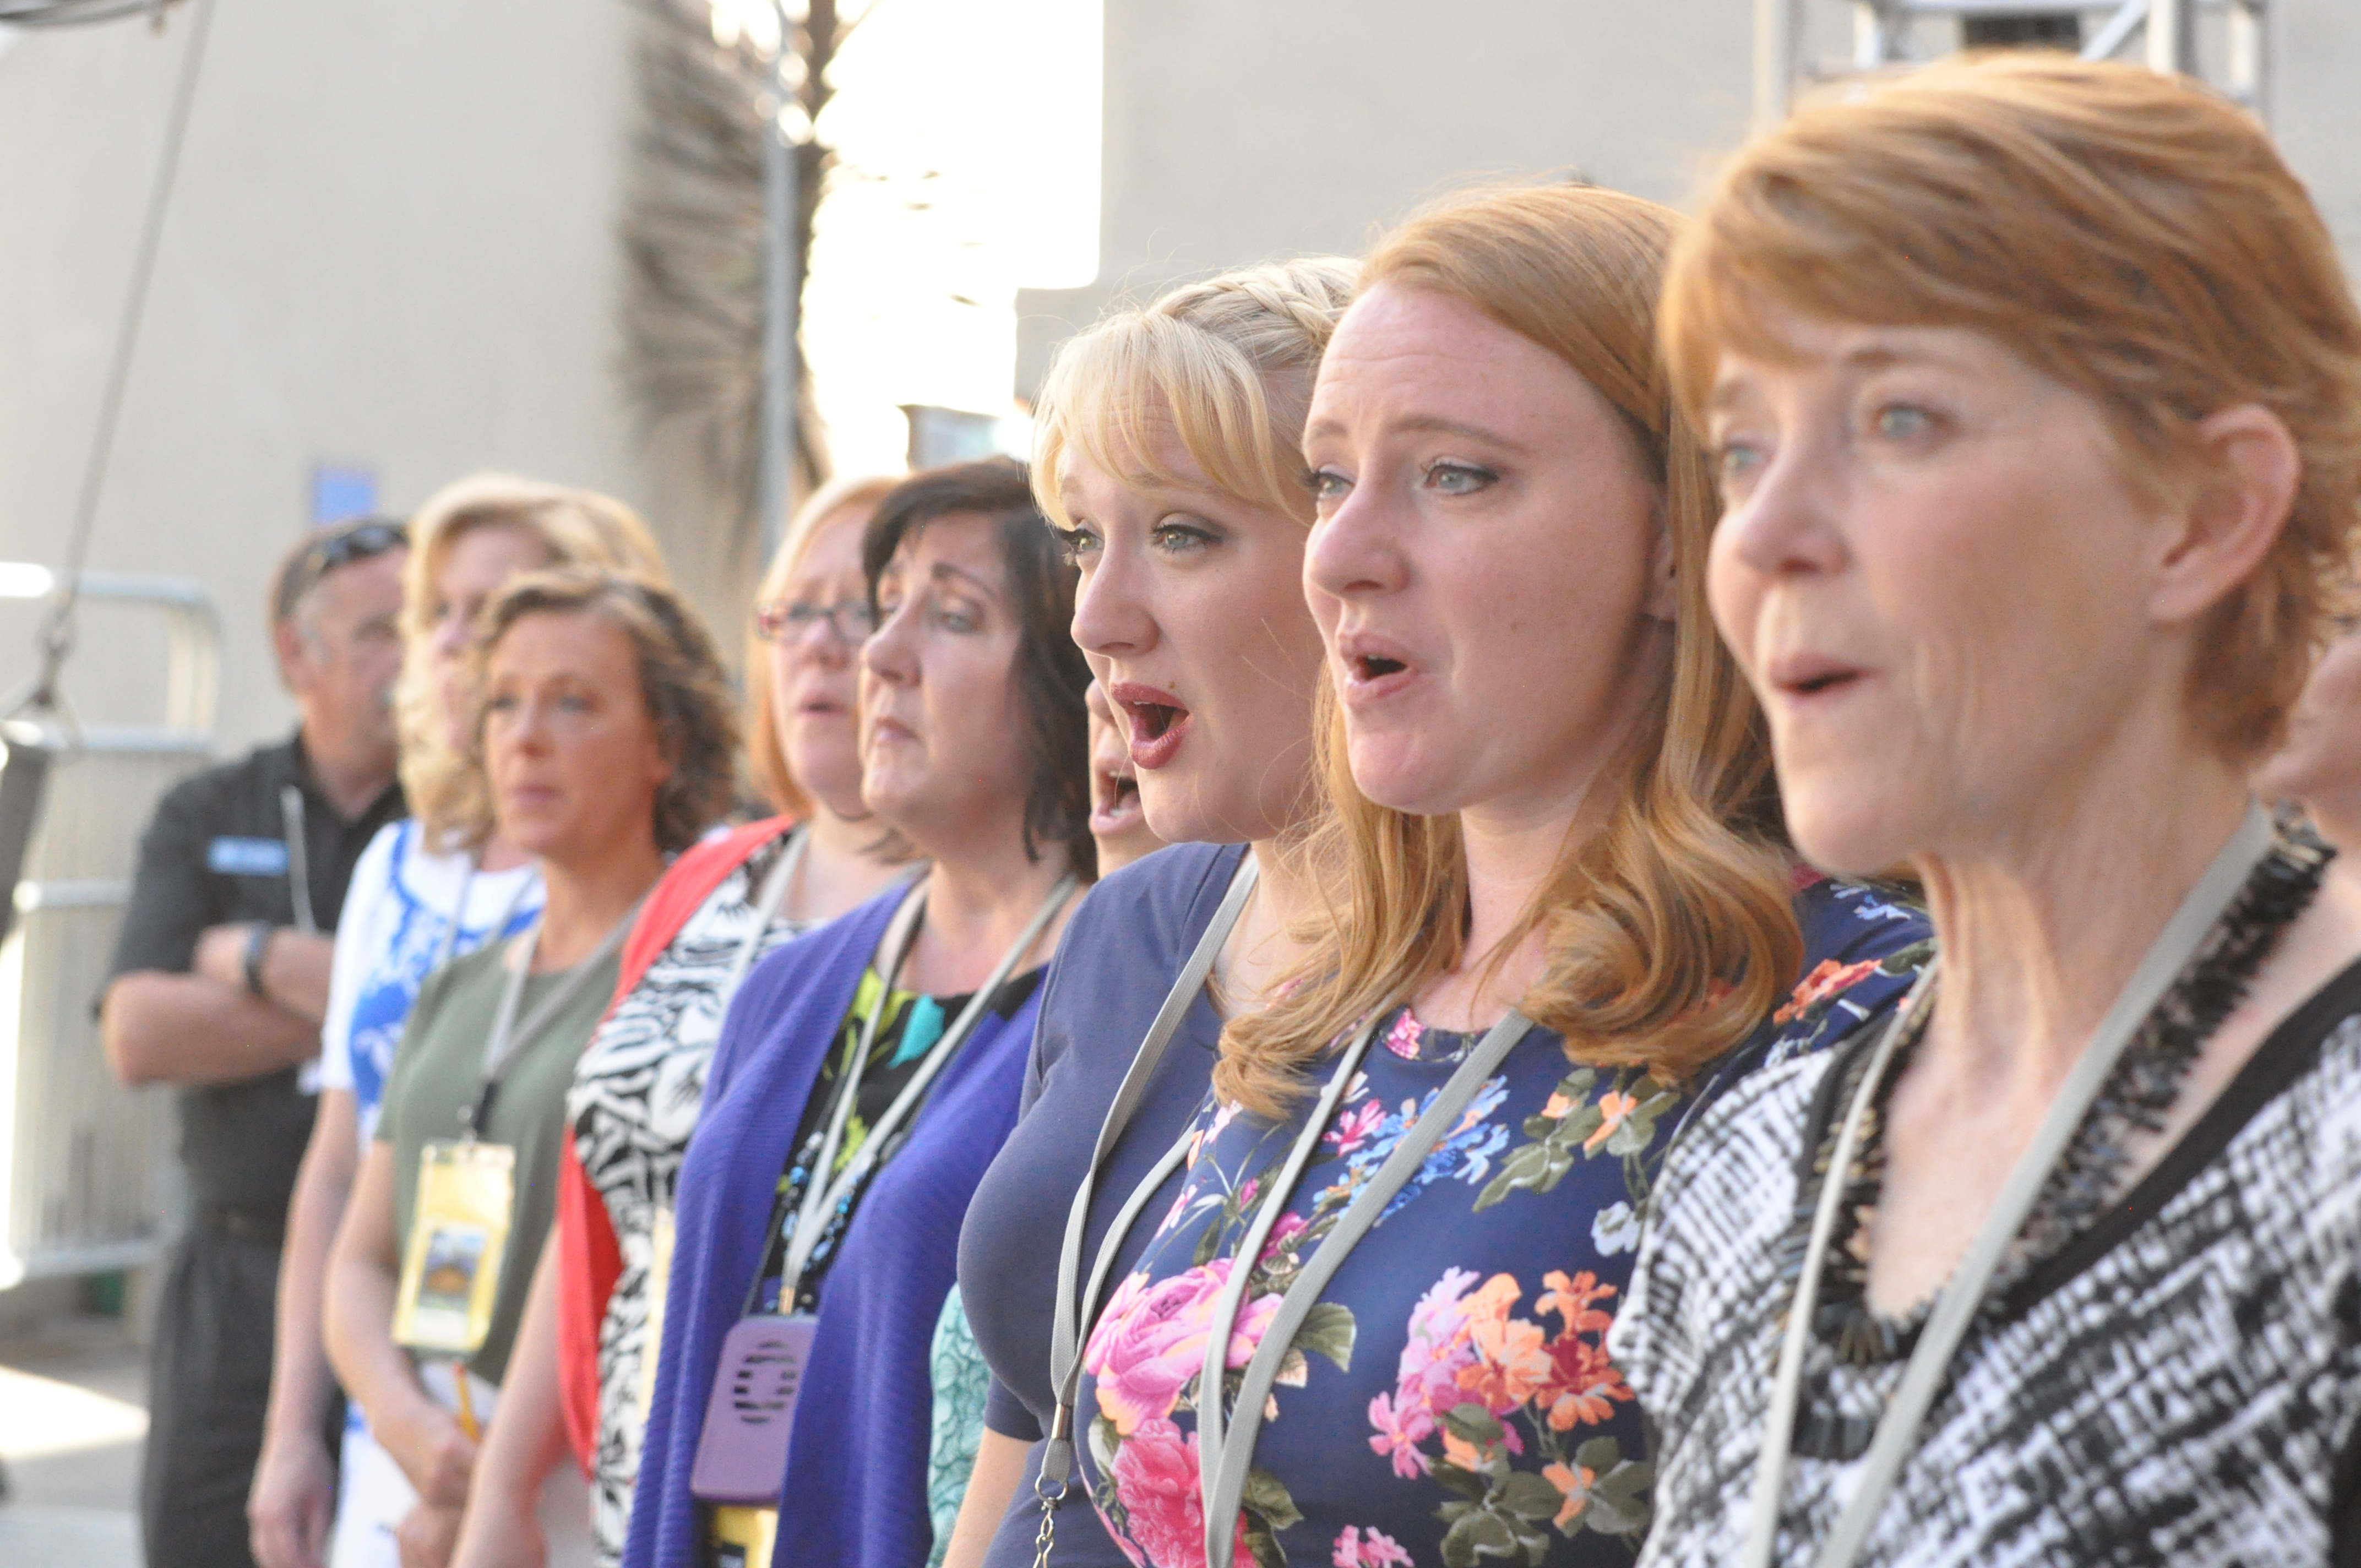 Female members of the Mormon Tabernacle Choir rehearse in Berkeley, California, during the ongoing 2018 Classic Coast Tour. Sunday, June 24, gave the touring performers an opportunity to worship together.